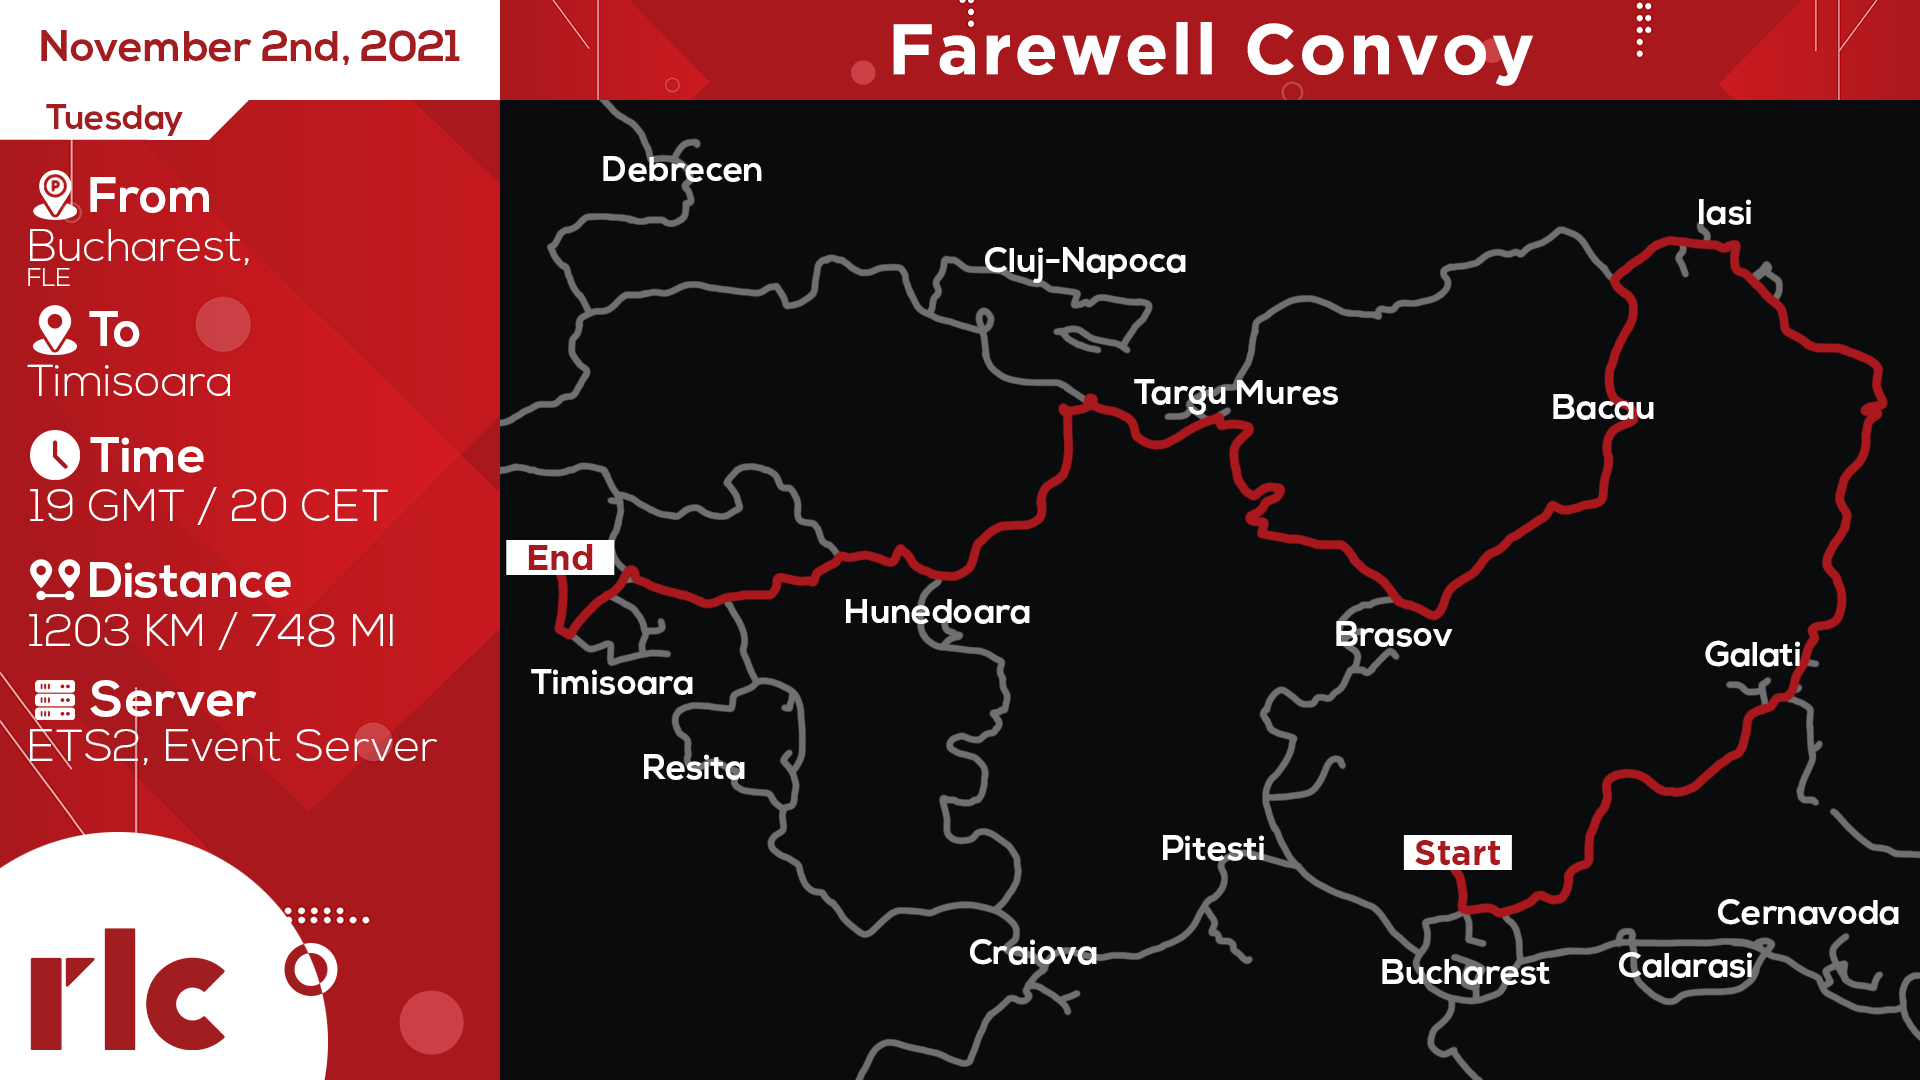 RLC Farewell Convoy Route Map